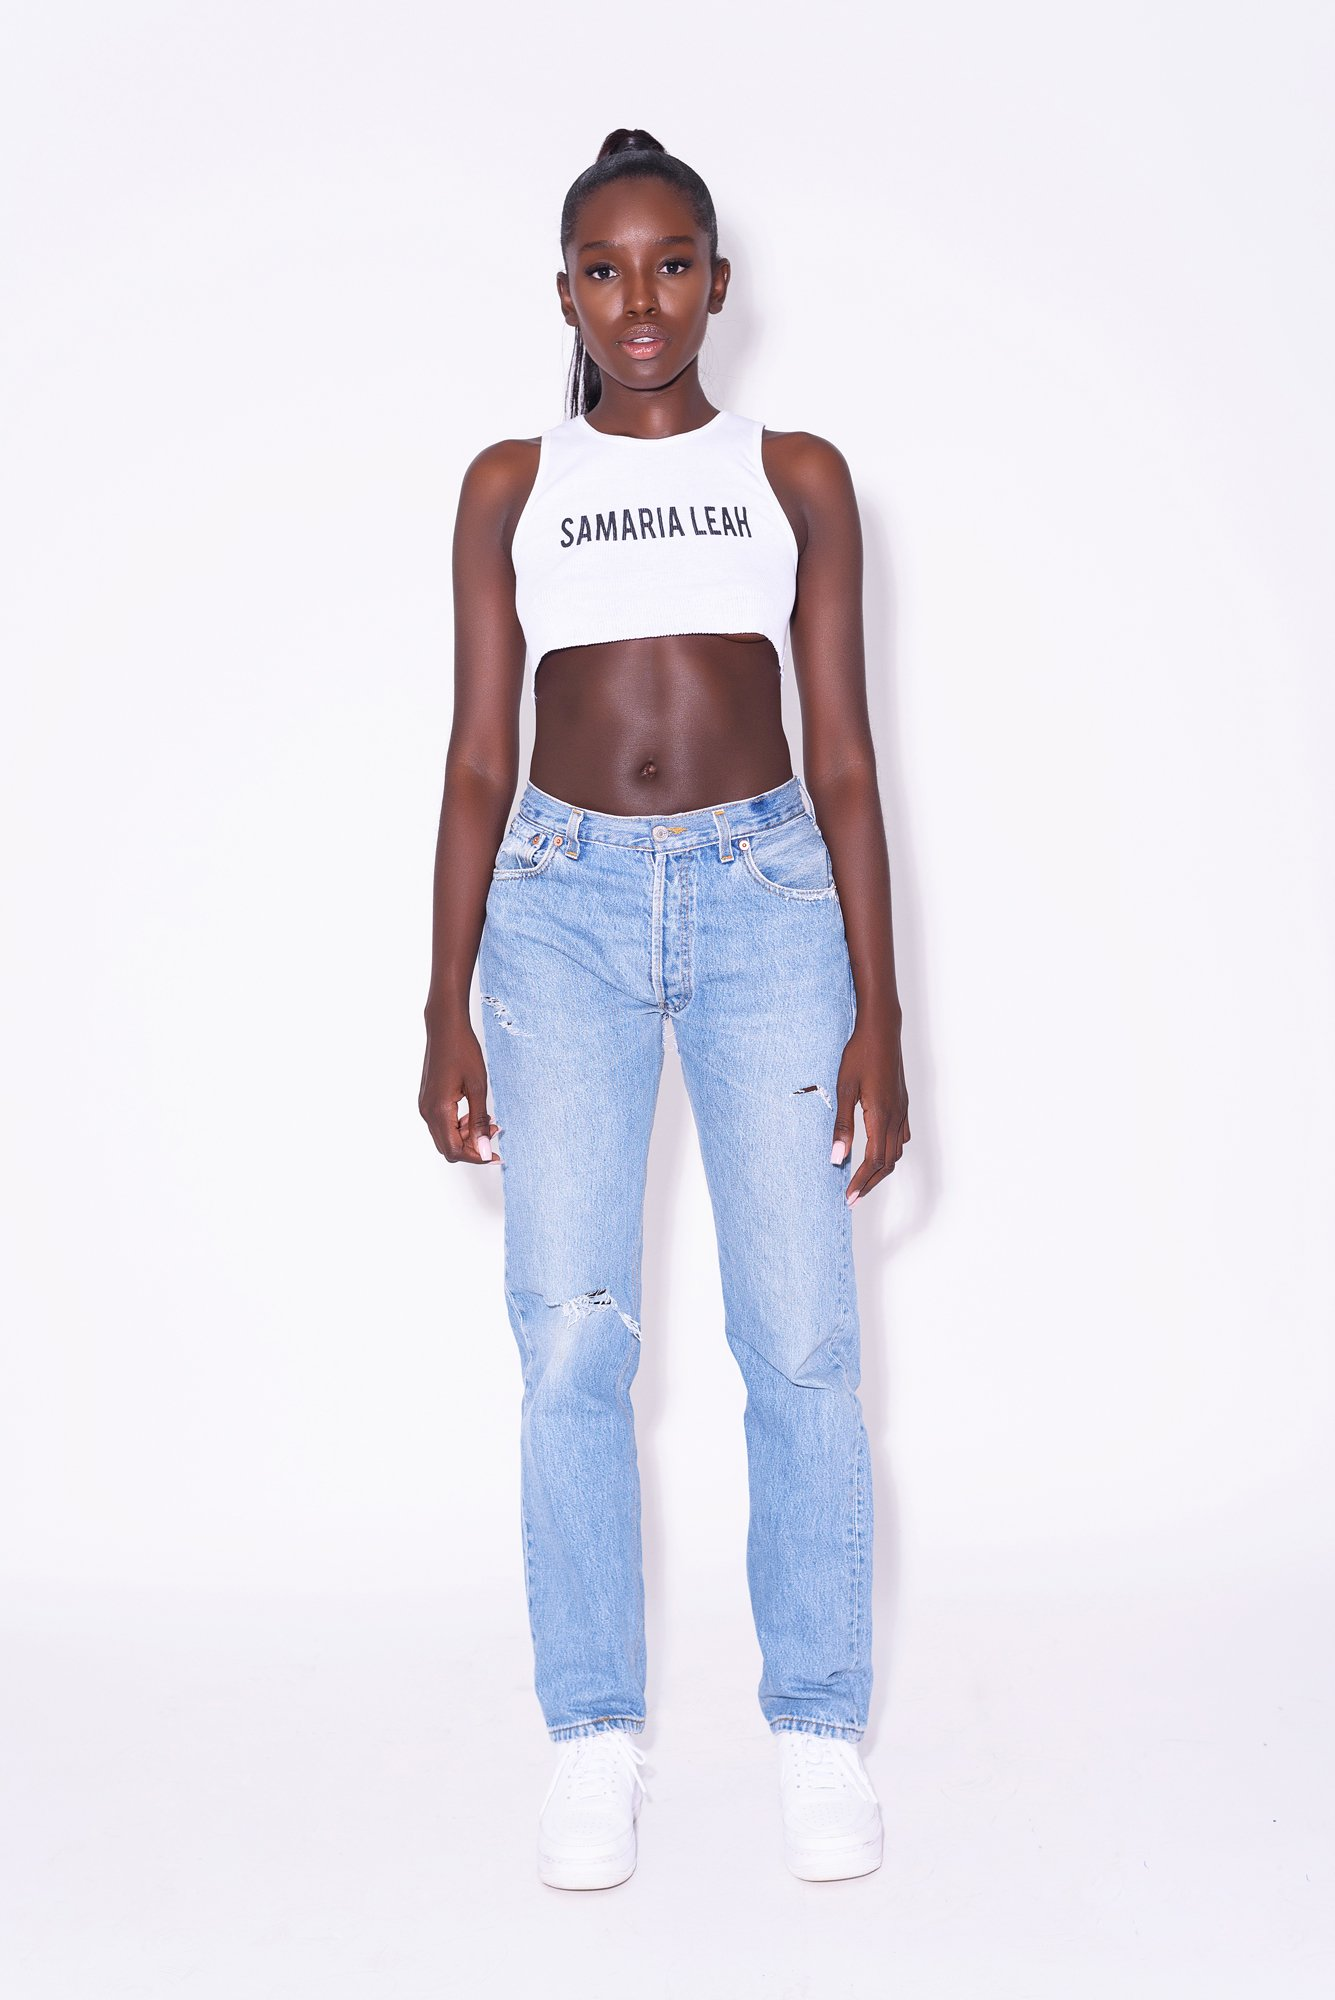 LEAH (BONE) by Levi's, available on samarialeah.com for $225 Kylie Jenner Pants Exact Product